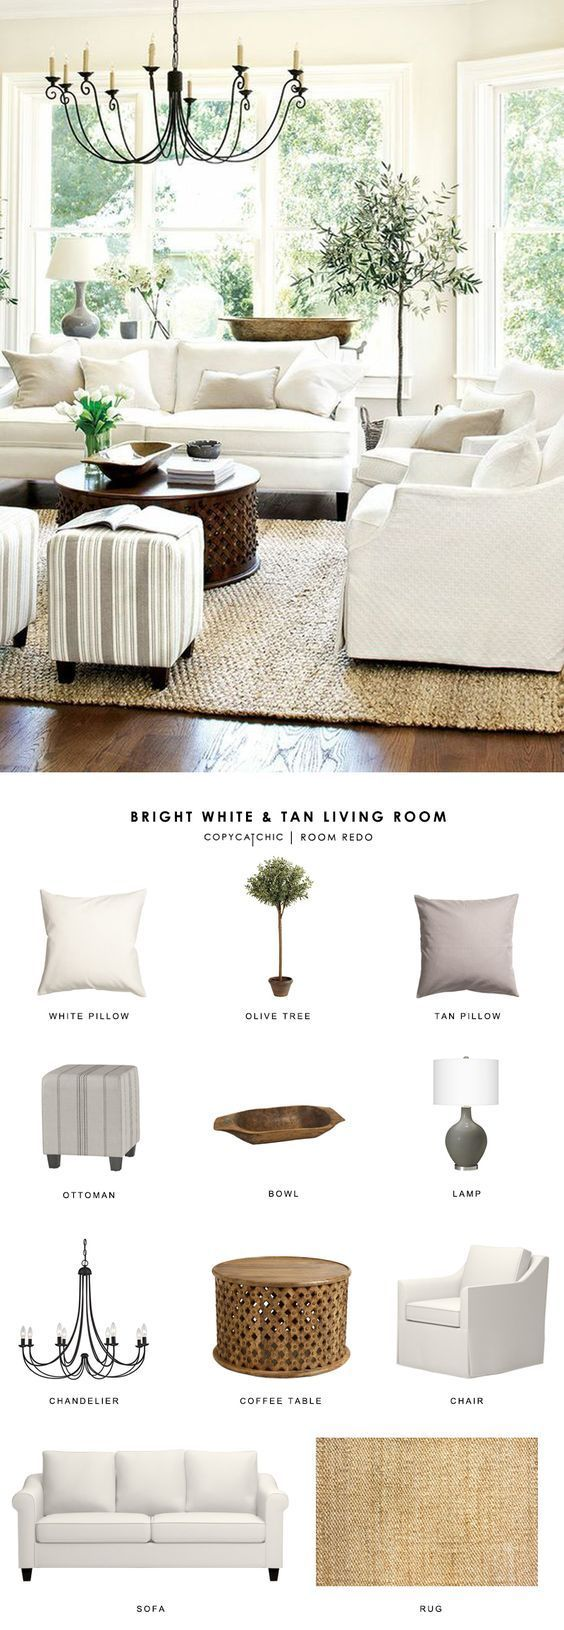 Copy Cat Chic Room Redo | Bright White and Tan Living Room ...